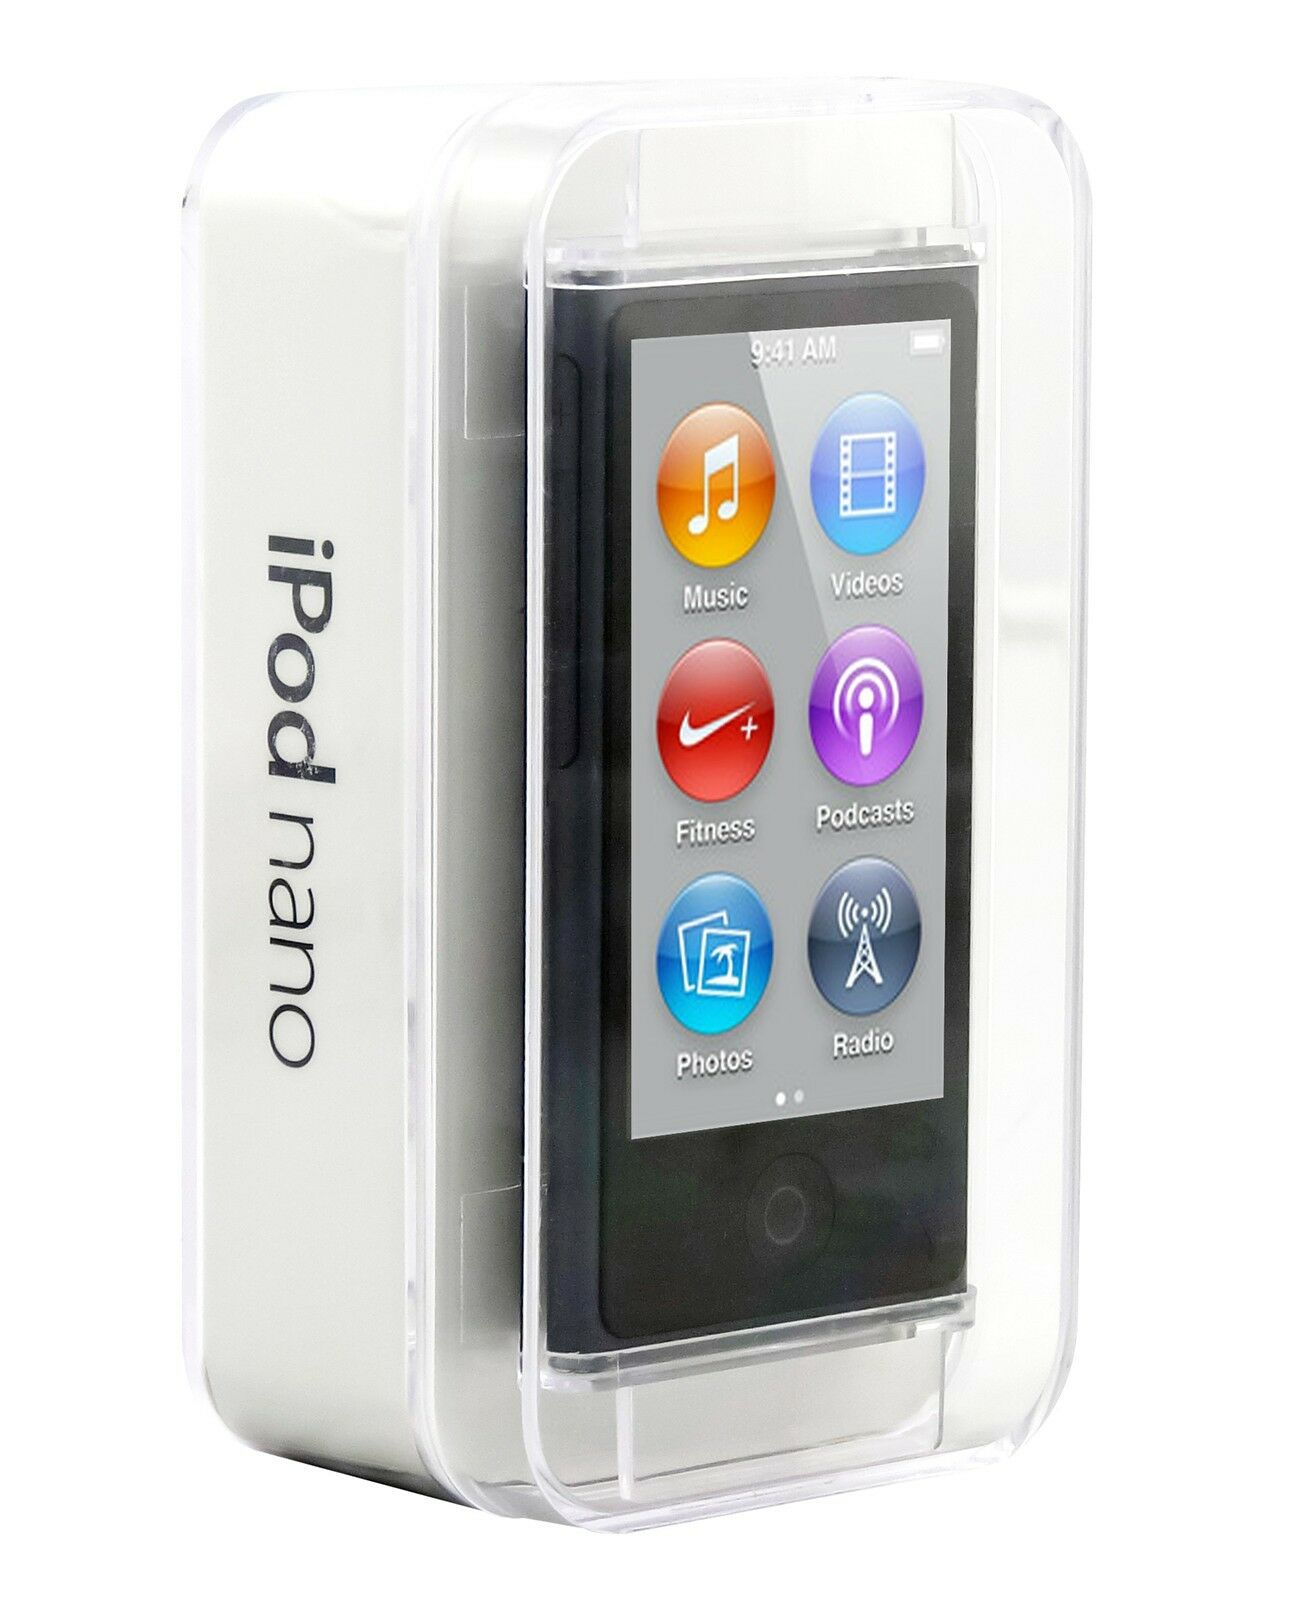 apple ipod nano 7th generation slate 16 gb latest model. Black Bedroom Furniture Sets. Home Design Ideas